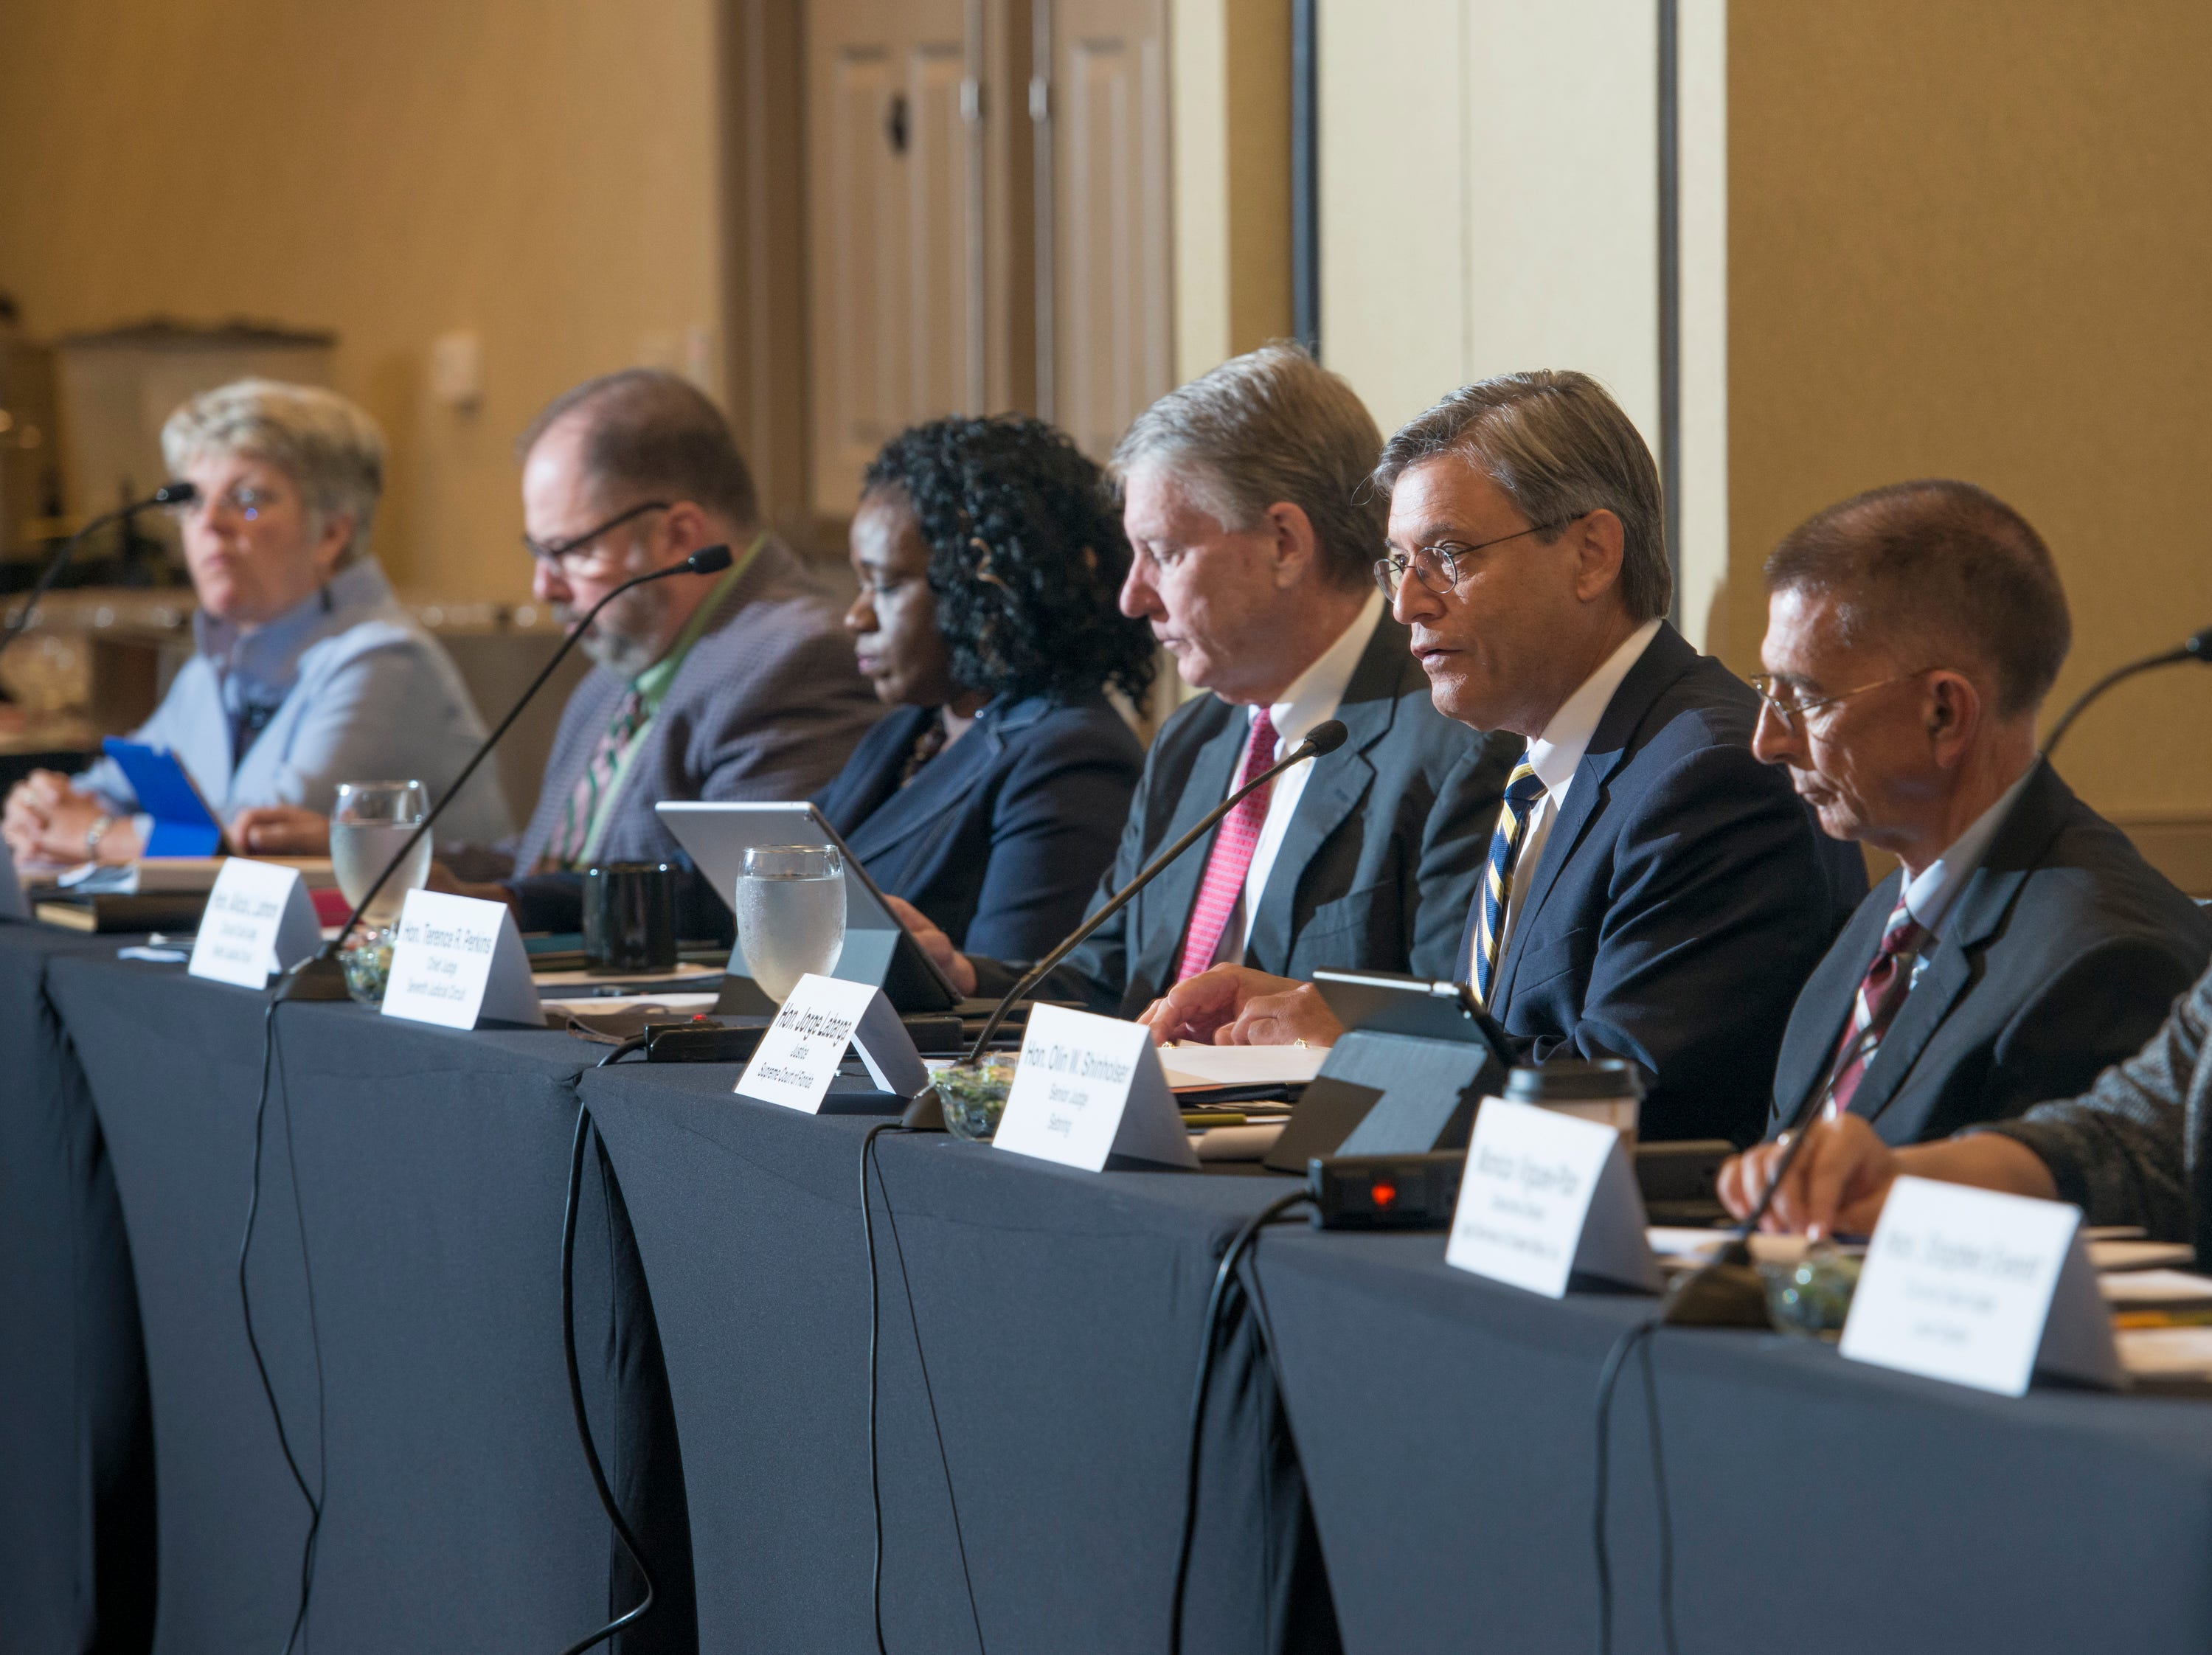 Supreme Court of Florida justice Jorge Labarga, second from right, speaks as the Florida Commission on Access to Civil Justice discusses veterans issues at the Hilton Garden Inn in Pensacola on Friday, August 10, 2018.